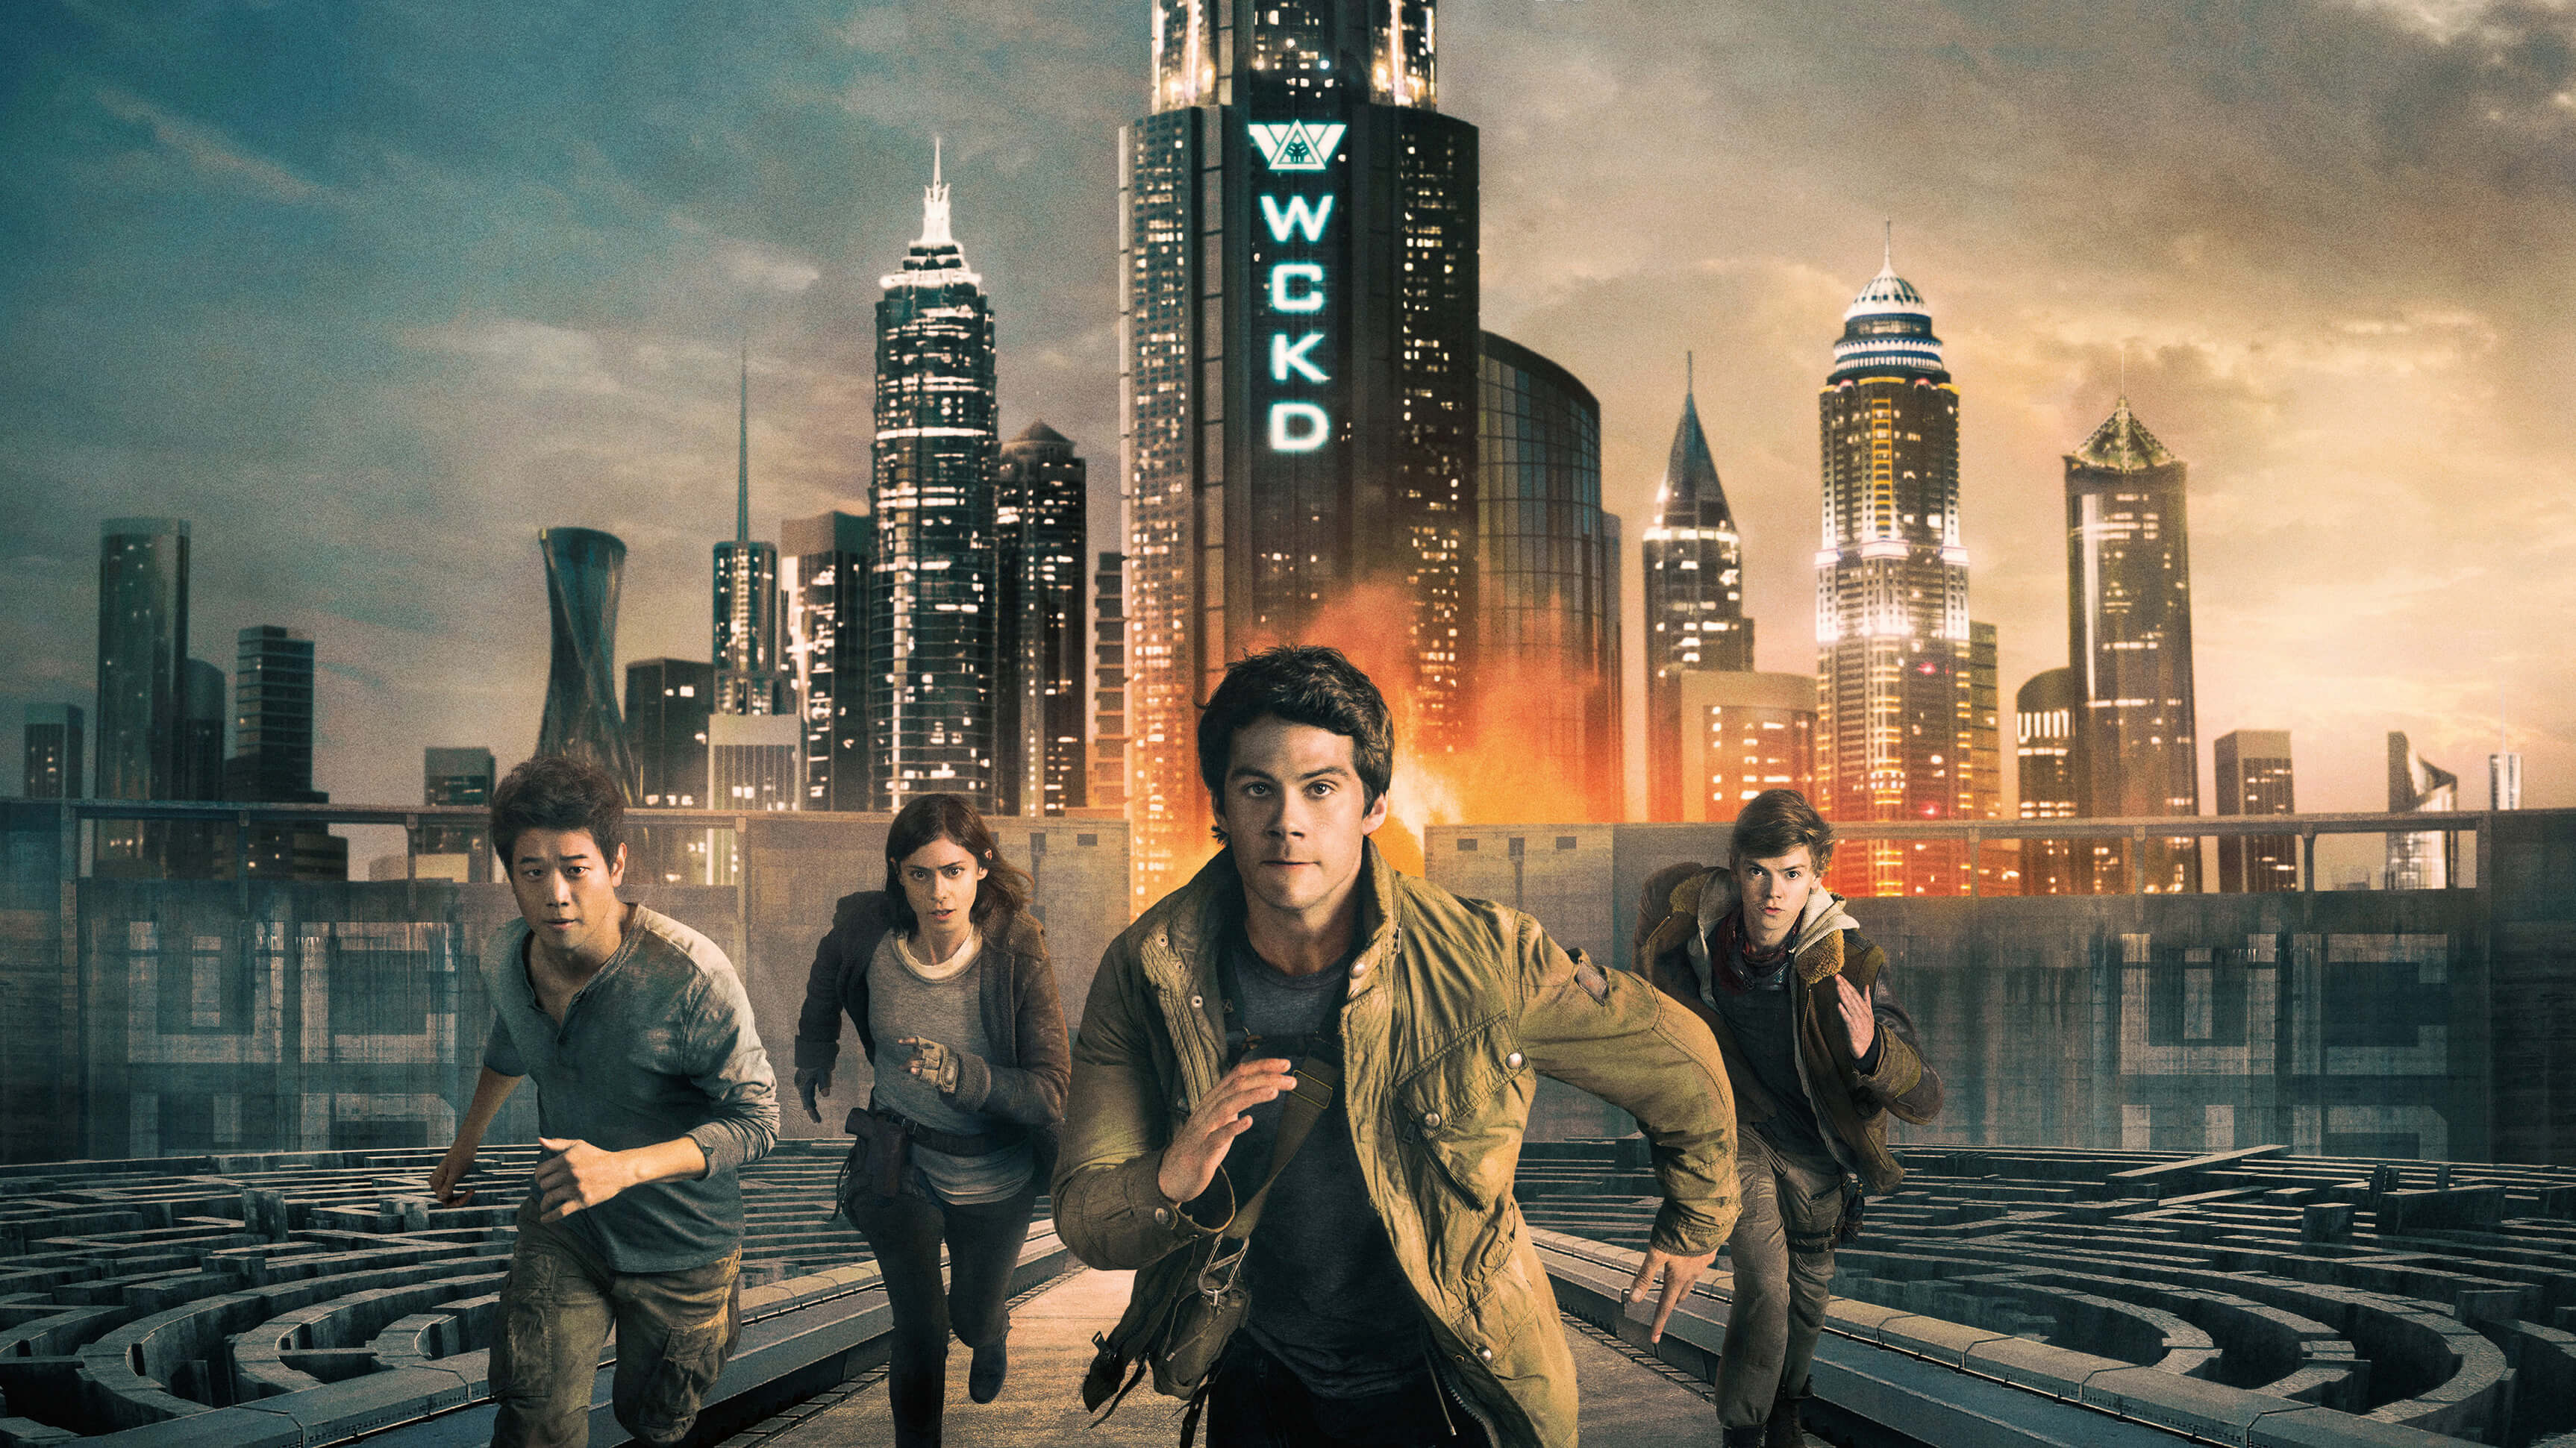 maze runner the death cure wallpaper background hd 63375